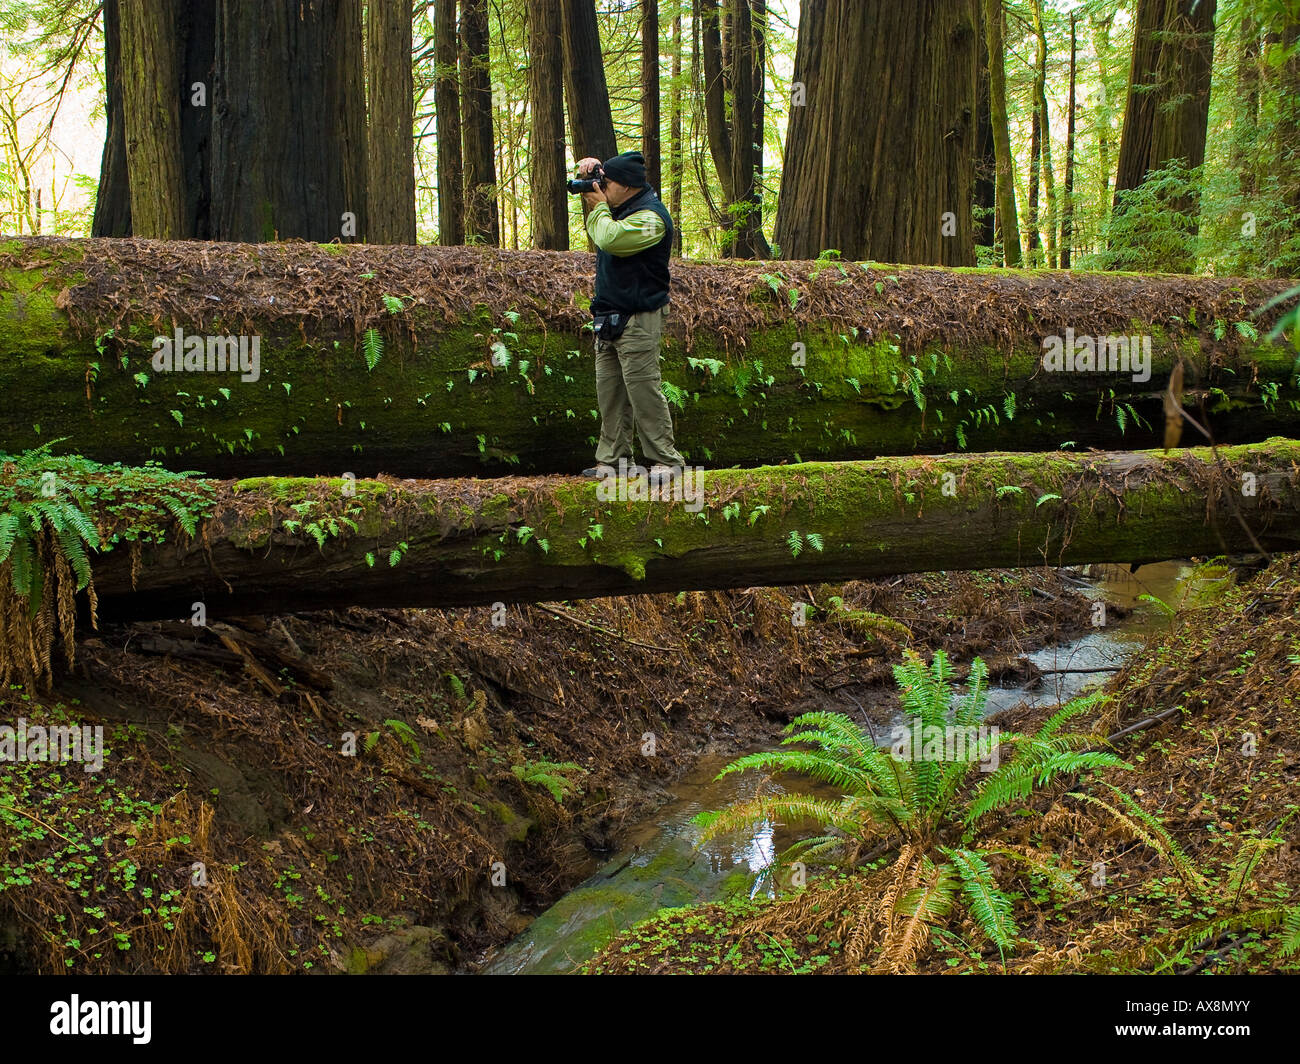 Photographing the Redwoods Humboldt Redwoods State Park California USA - Stock Image